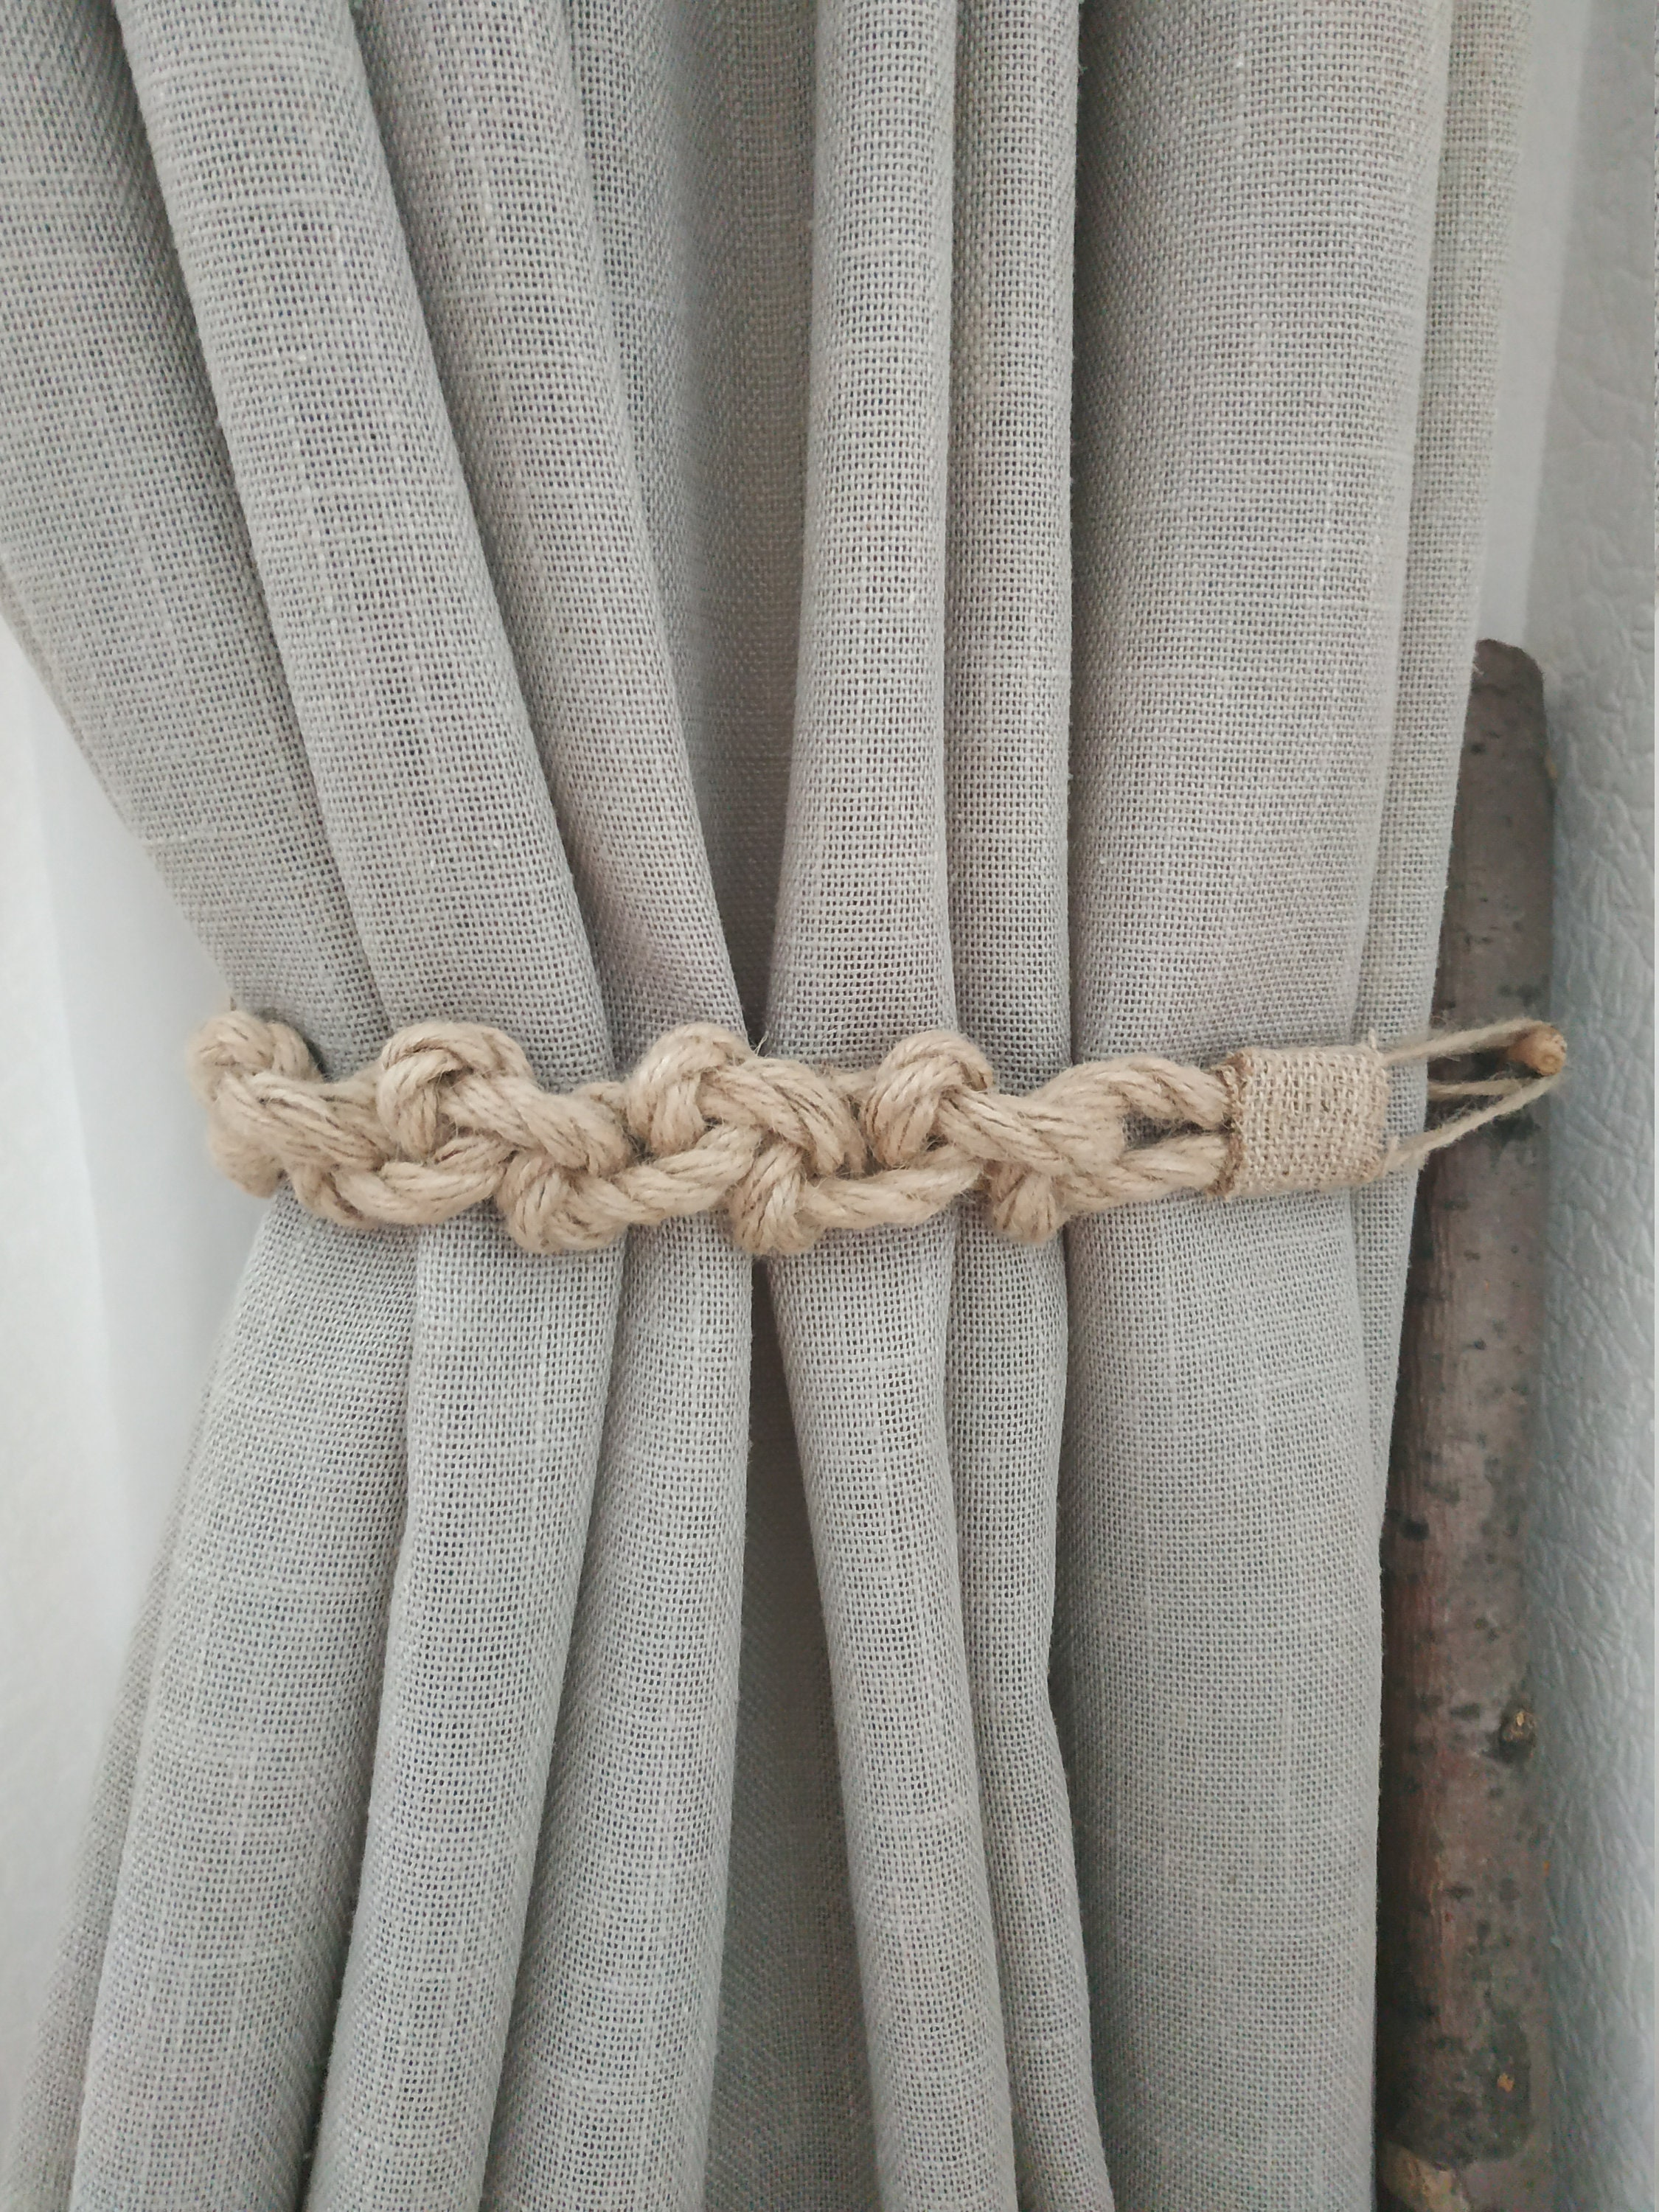 Rustic Jute Curtain Tie Backs Gypsy D 233 Cor Boho Accessories